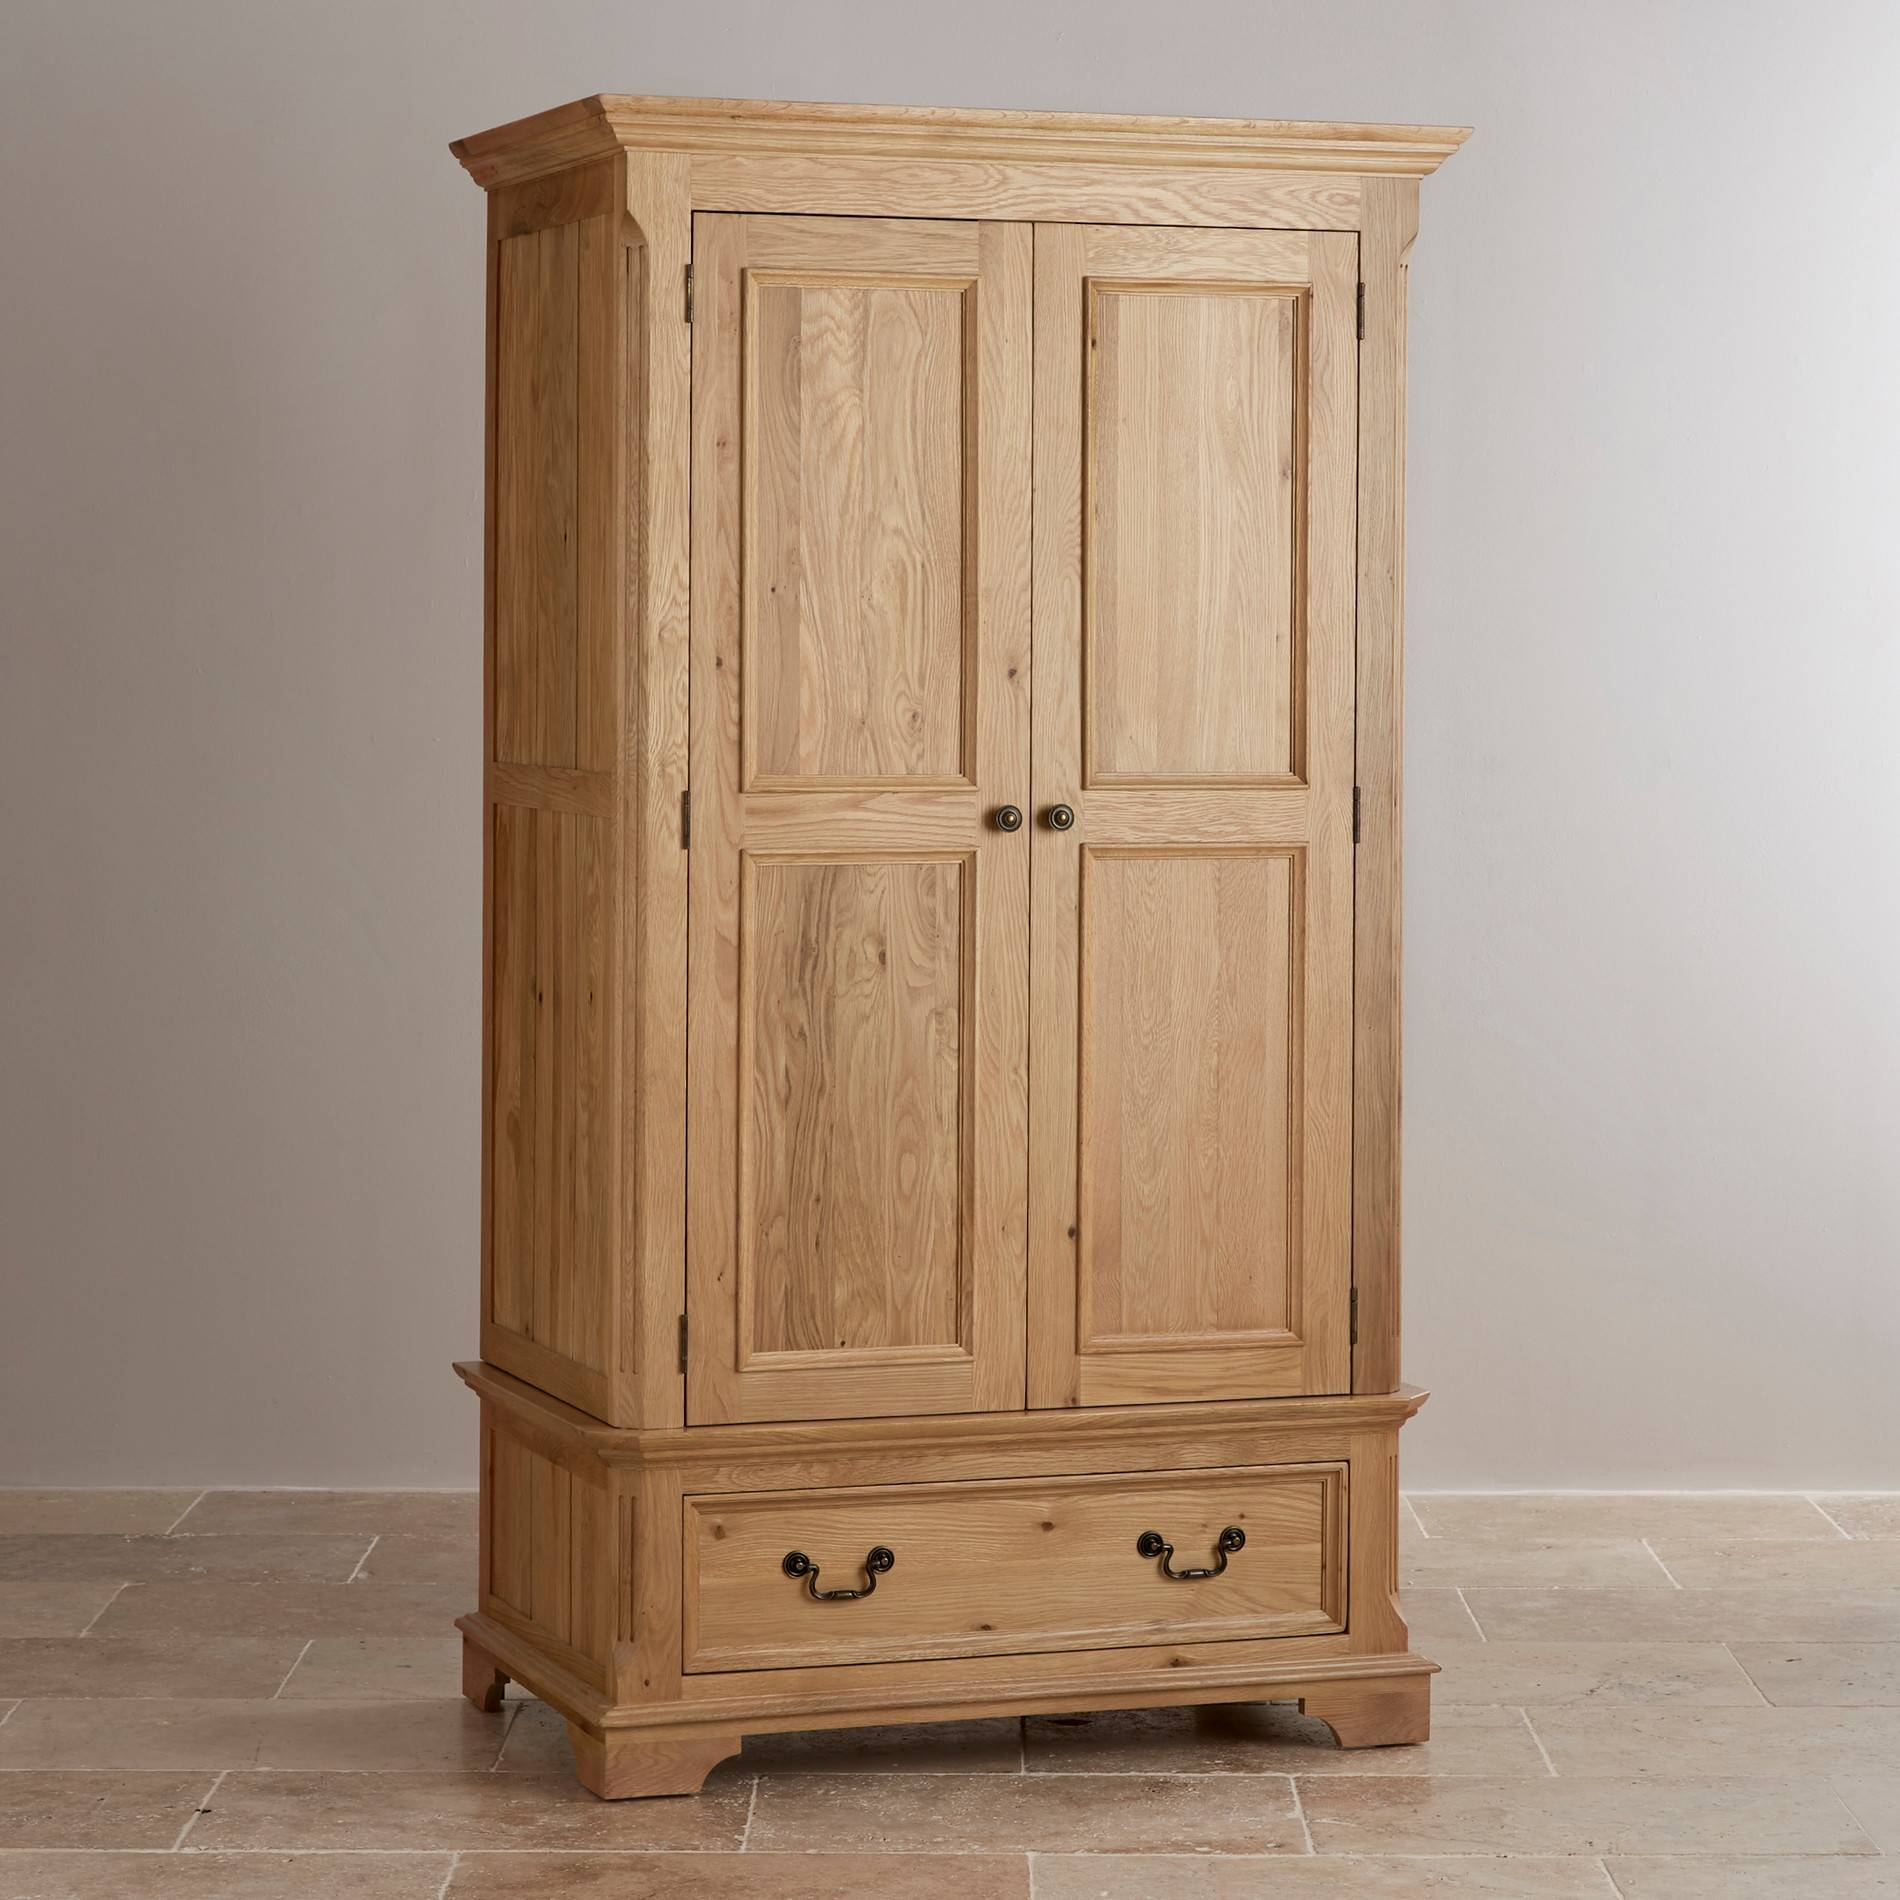 Solid Hardwood Wardrobes | Finance Available | Oak Furniture Land with Oak Wardrobes for Sale (Image 10 of 15)